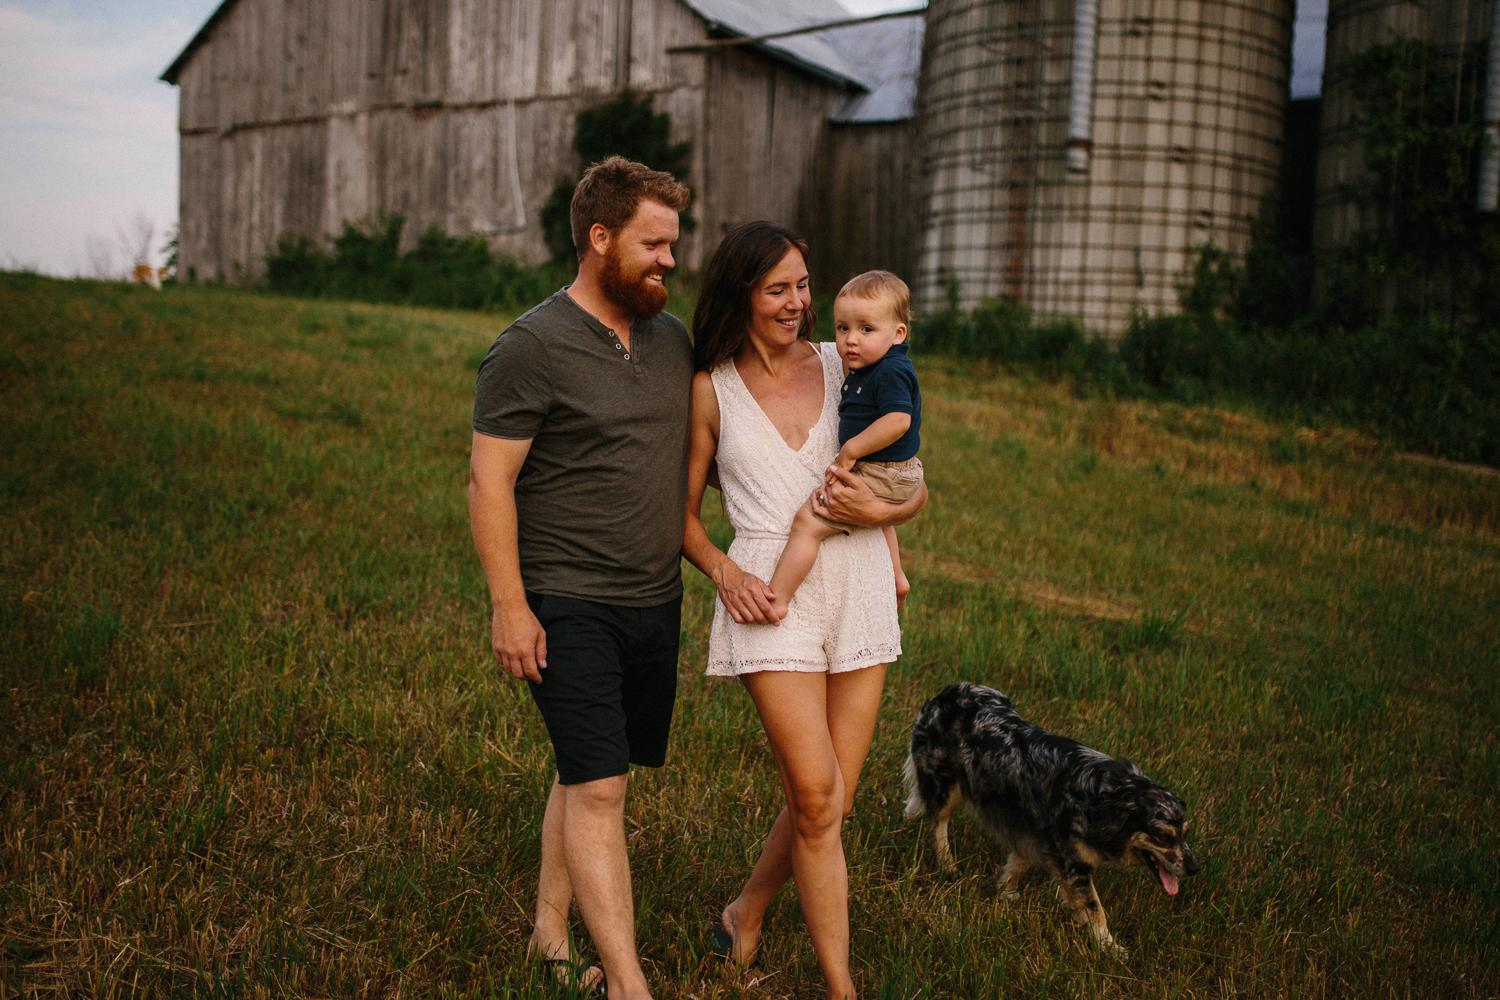 lanark highlands farm family photo session - kerry ford photography-048.jpg